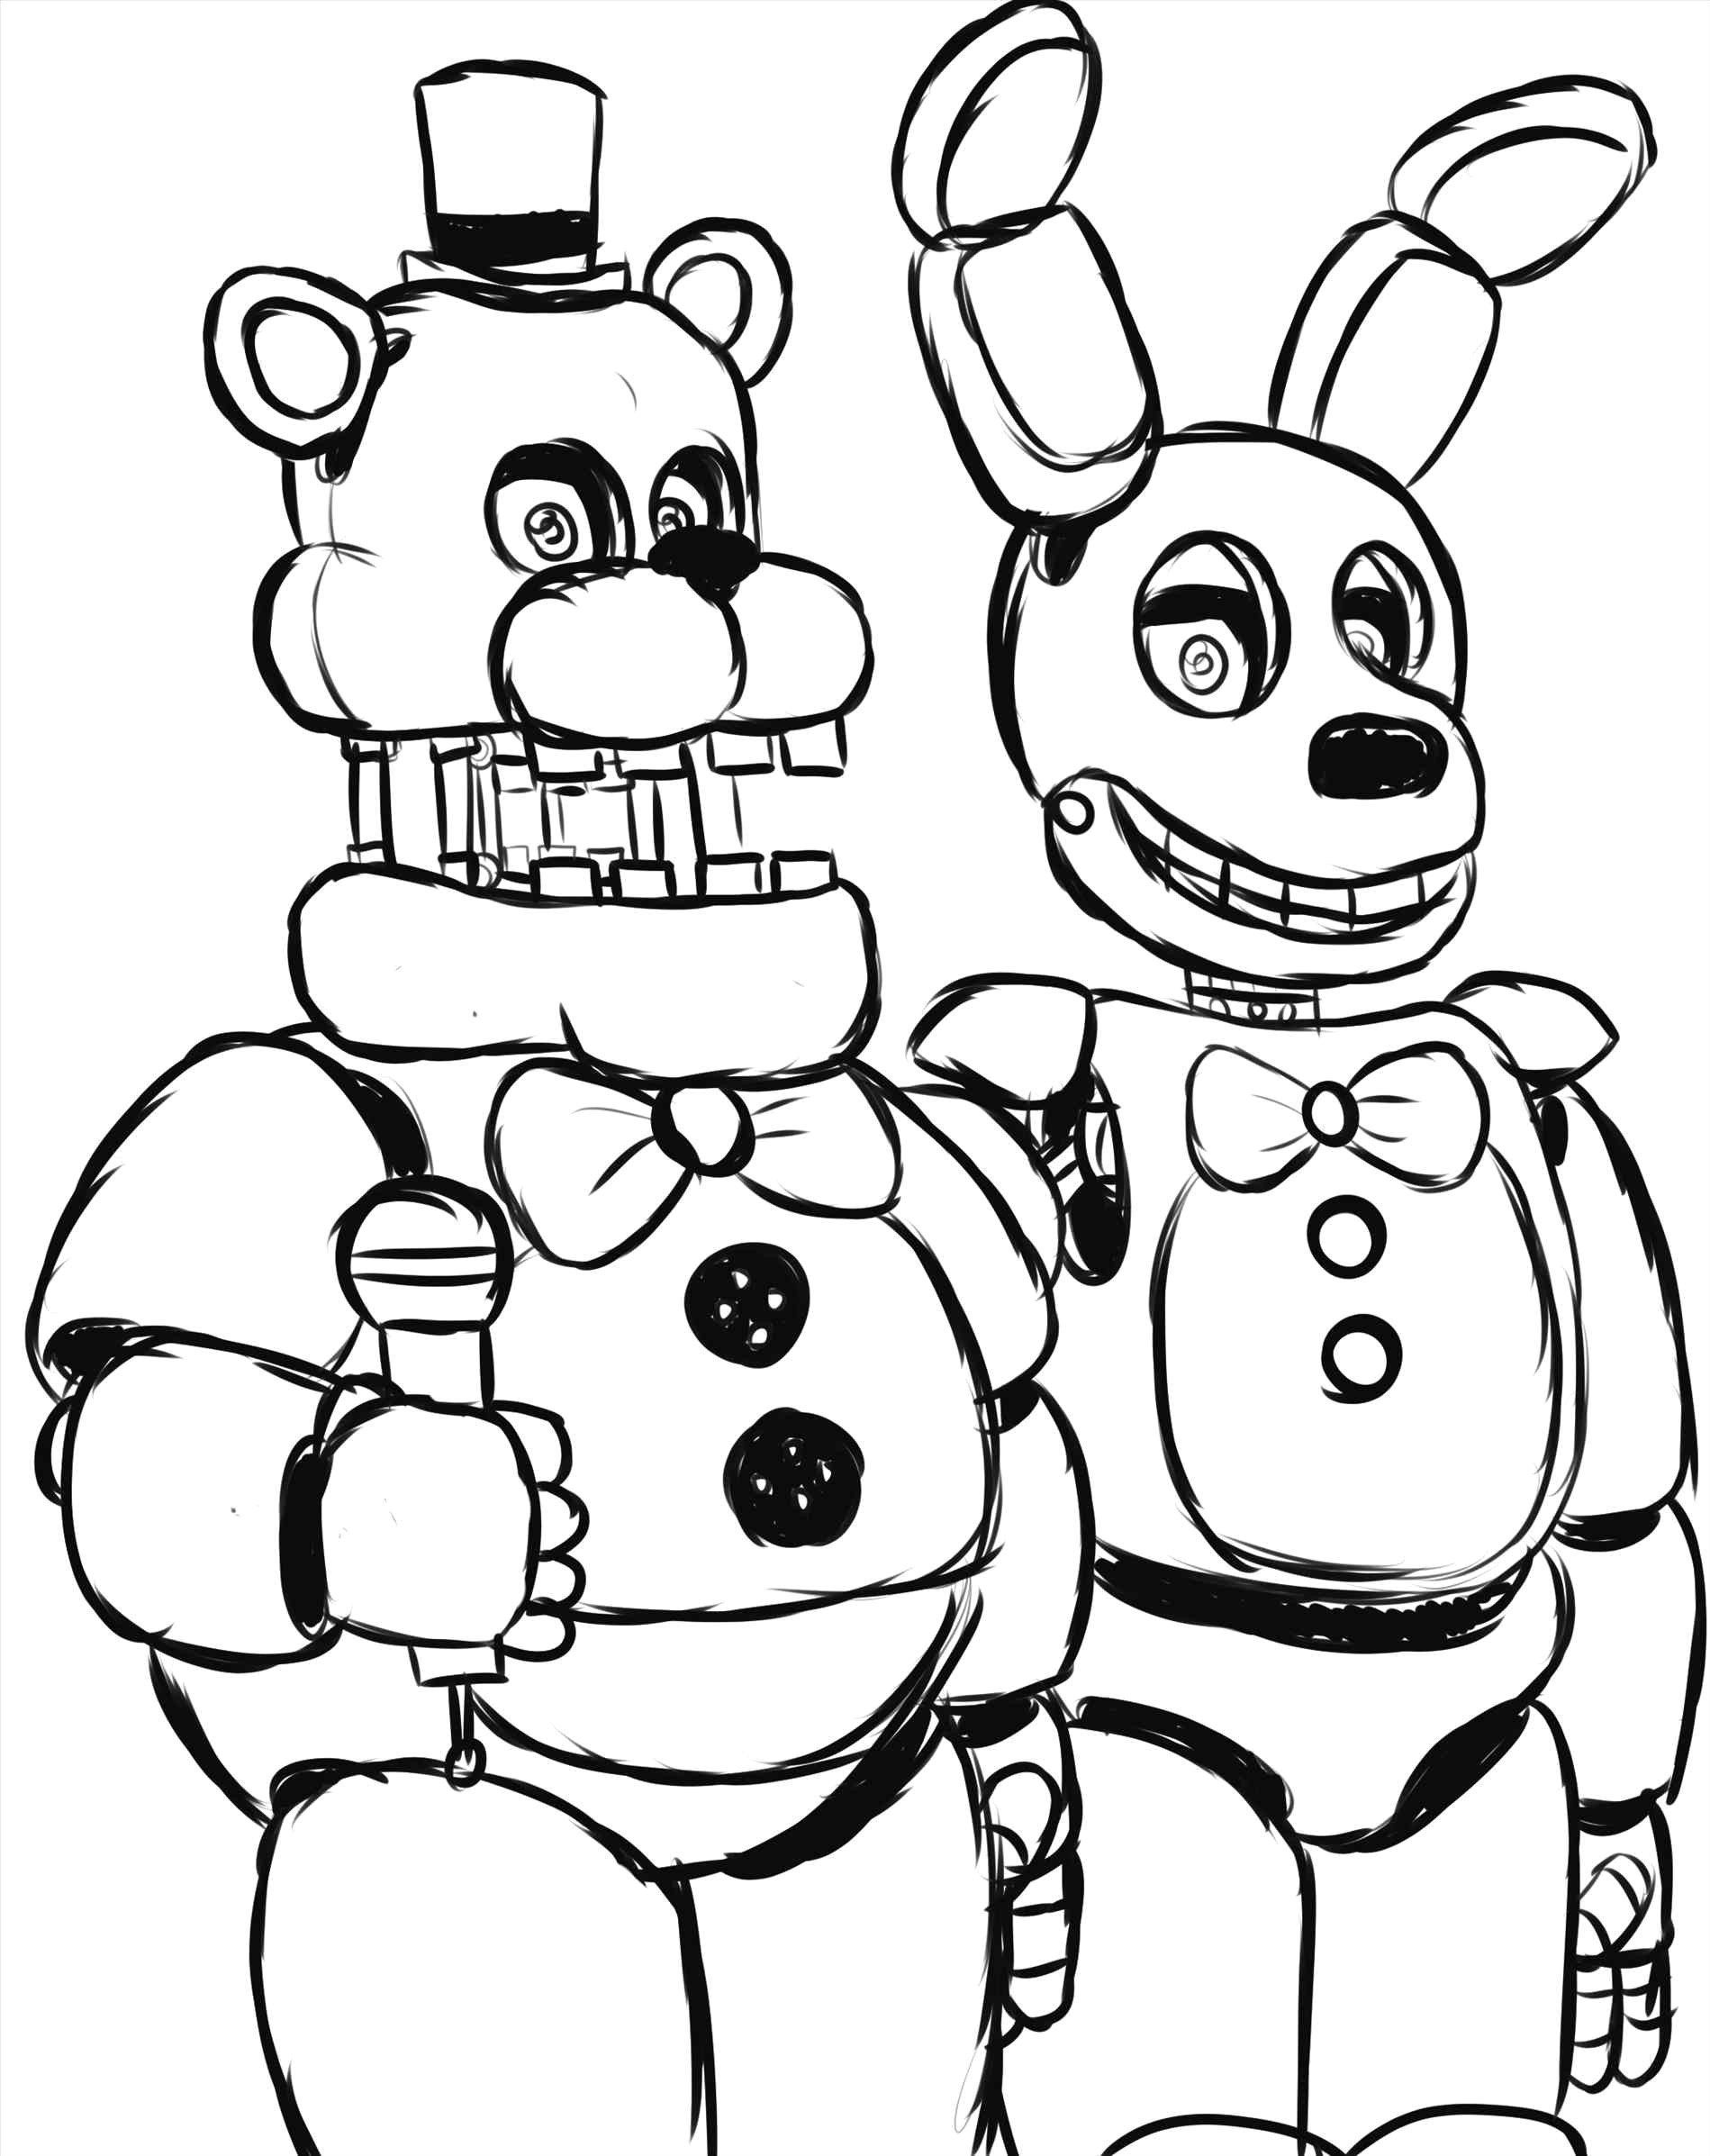 fnaf cupcake coloring pages free printable cupcake coloring pages free coloring sheets cupcake fnaf coloring pages